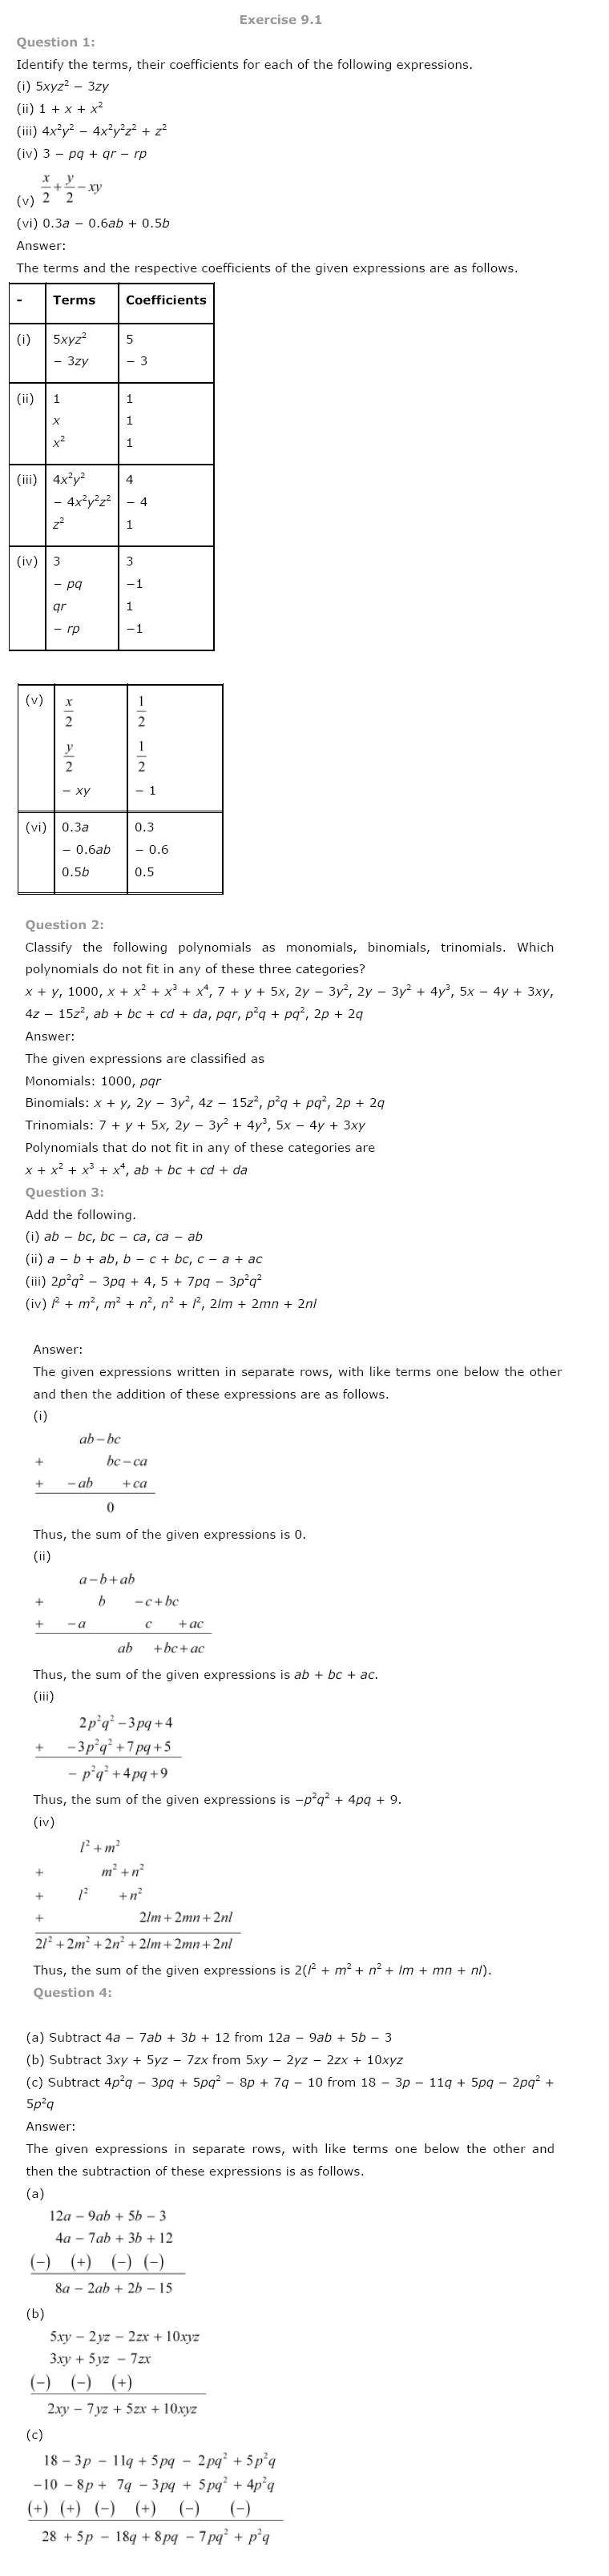 Ncert Solutions For Class 8 Maths Ch 9 Algebraic Expressions And Identities Pdf Download Algebraic Expressions Maths Solutions Math [ 3216 x 760 Pixel ]